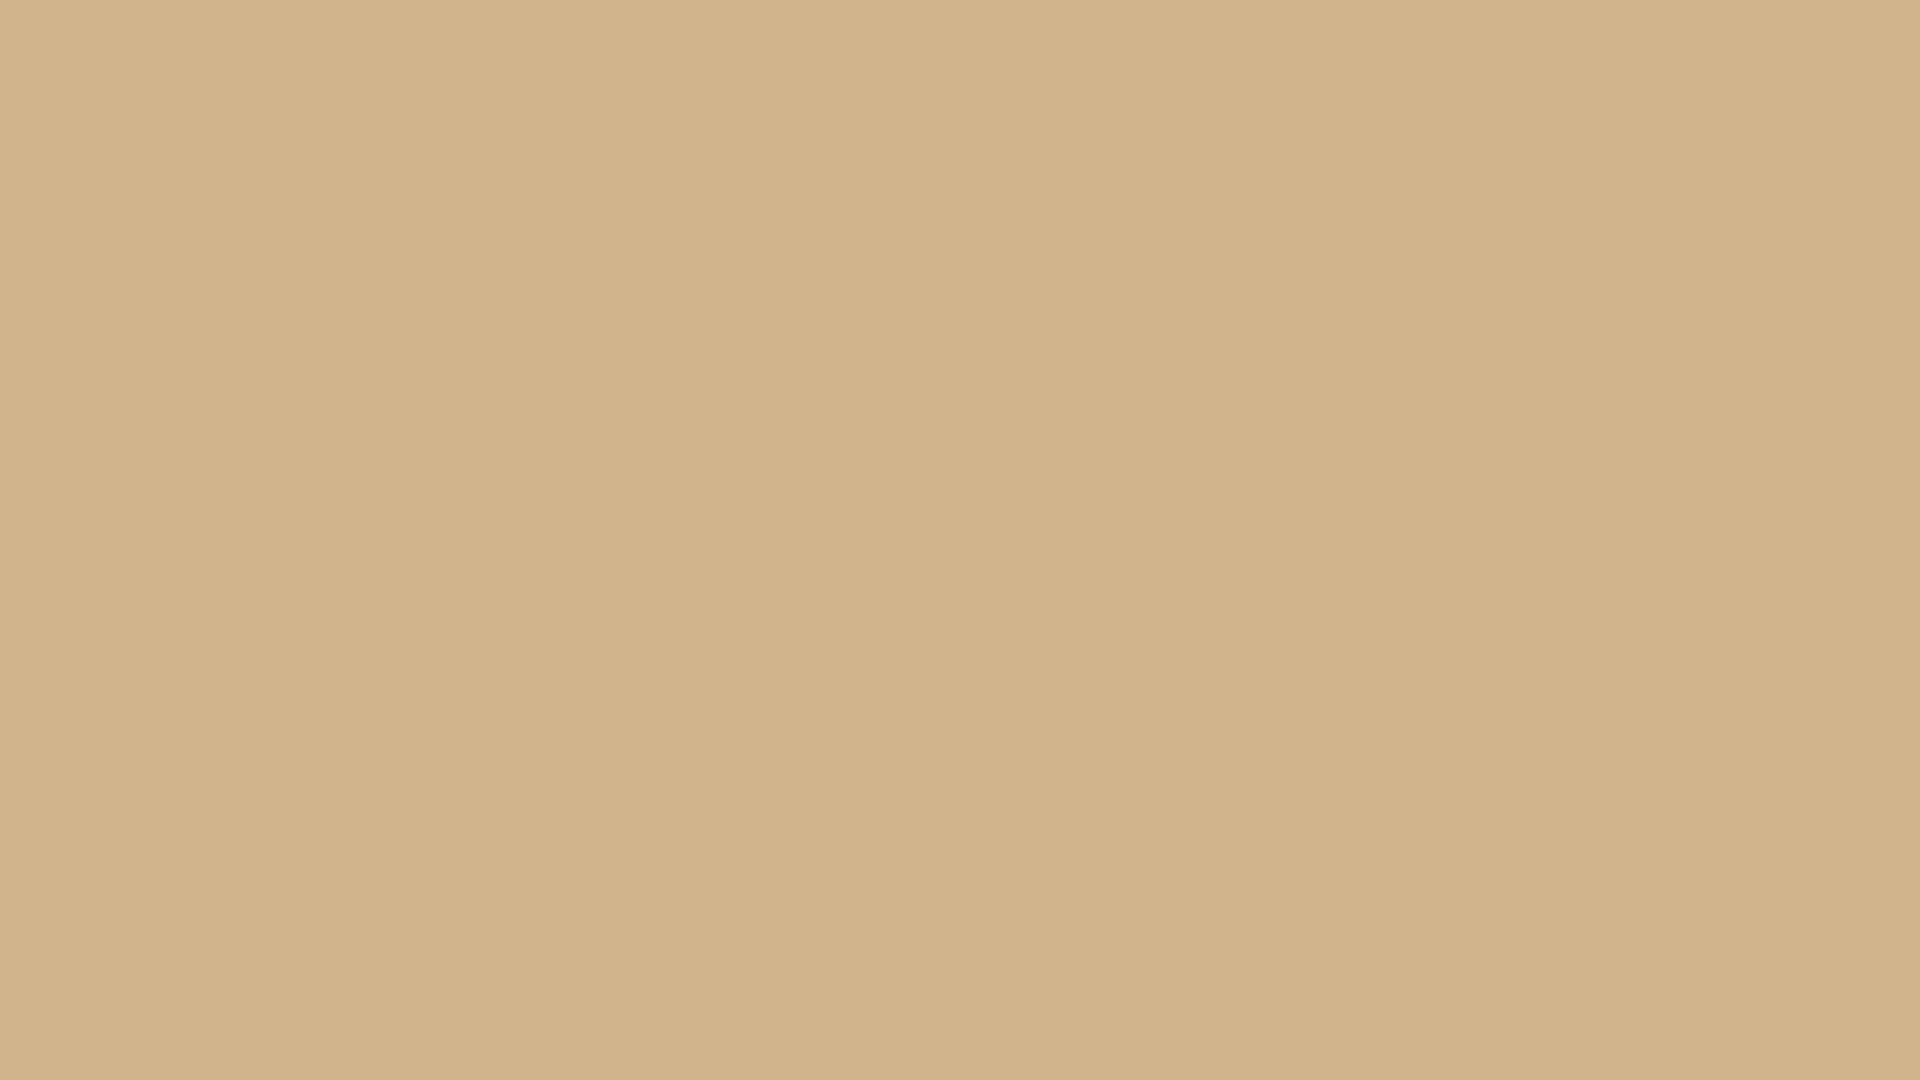 Pintura Color Beige 1920x1080 Tan Solid Color Background